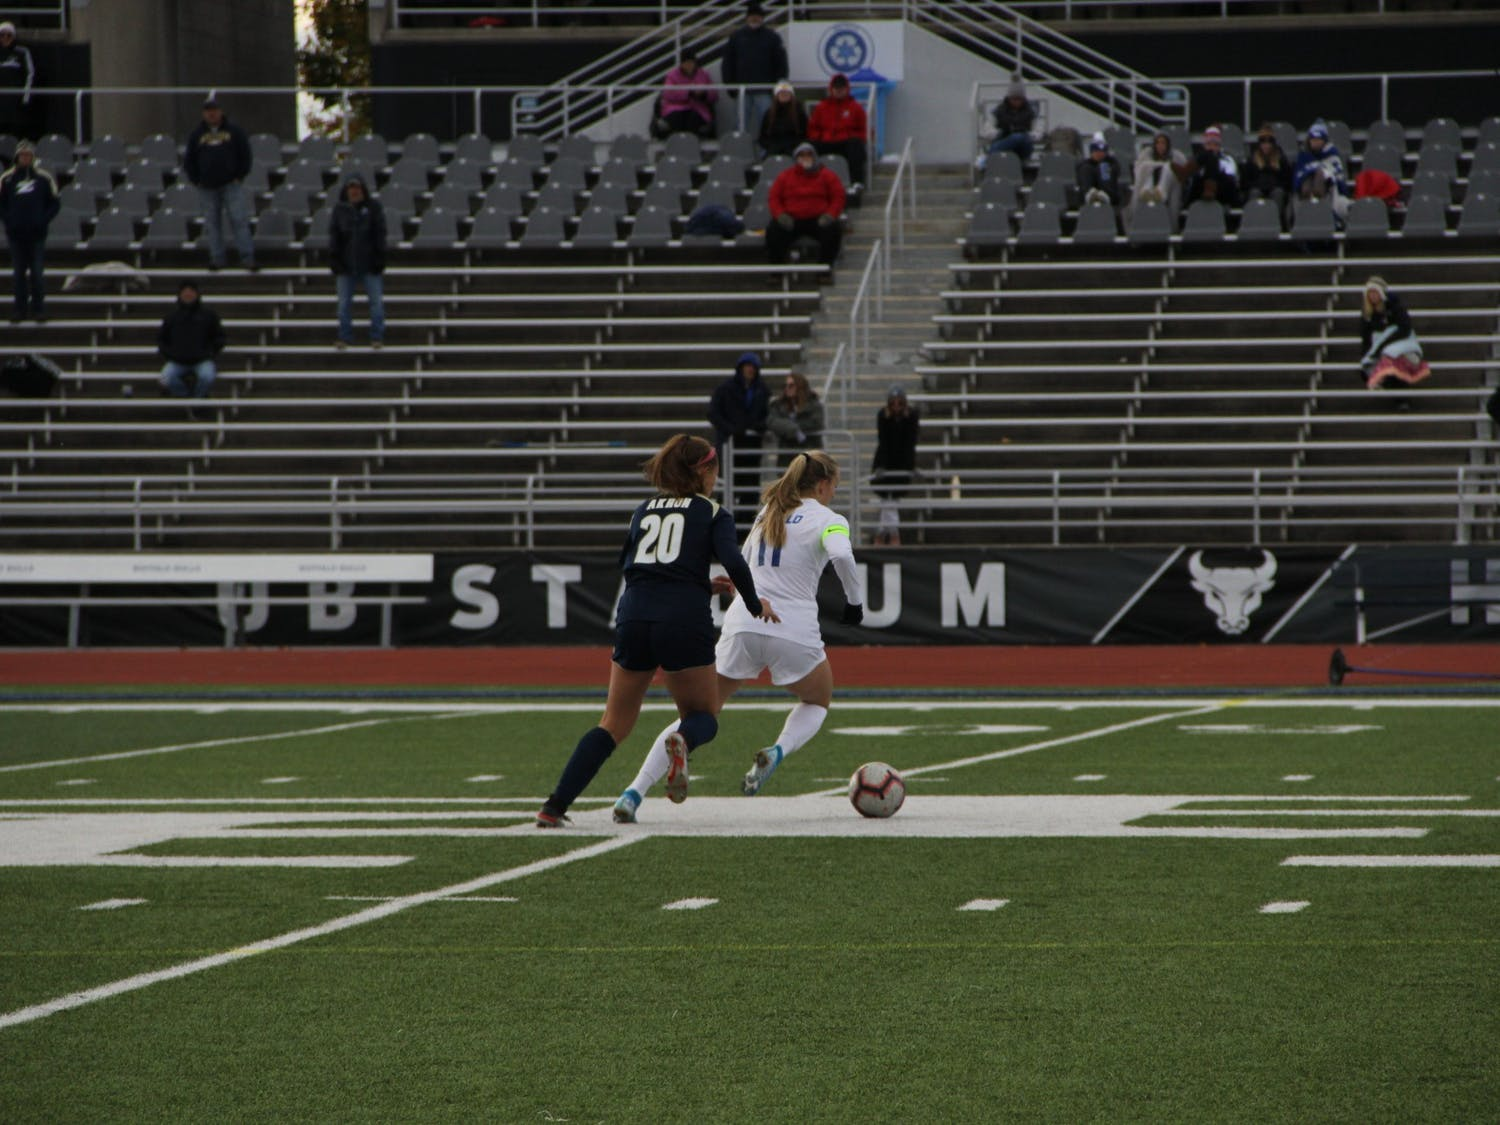 UB midfielder Marcy Barberic defends the ball from an Akron player in 2019. UB split its weekend slate.